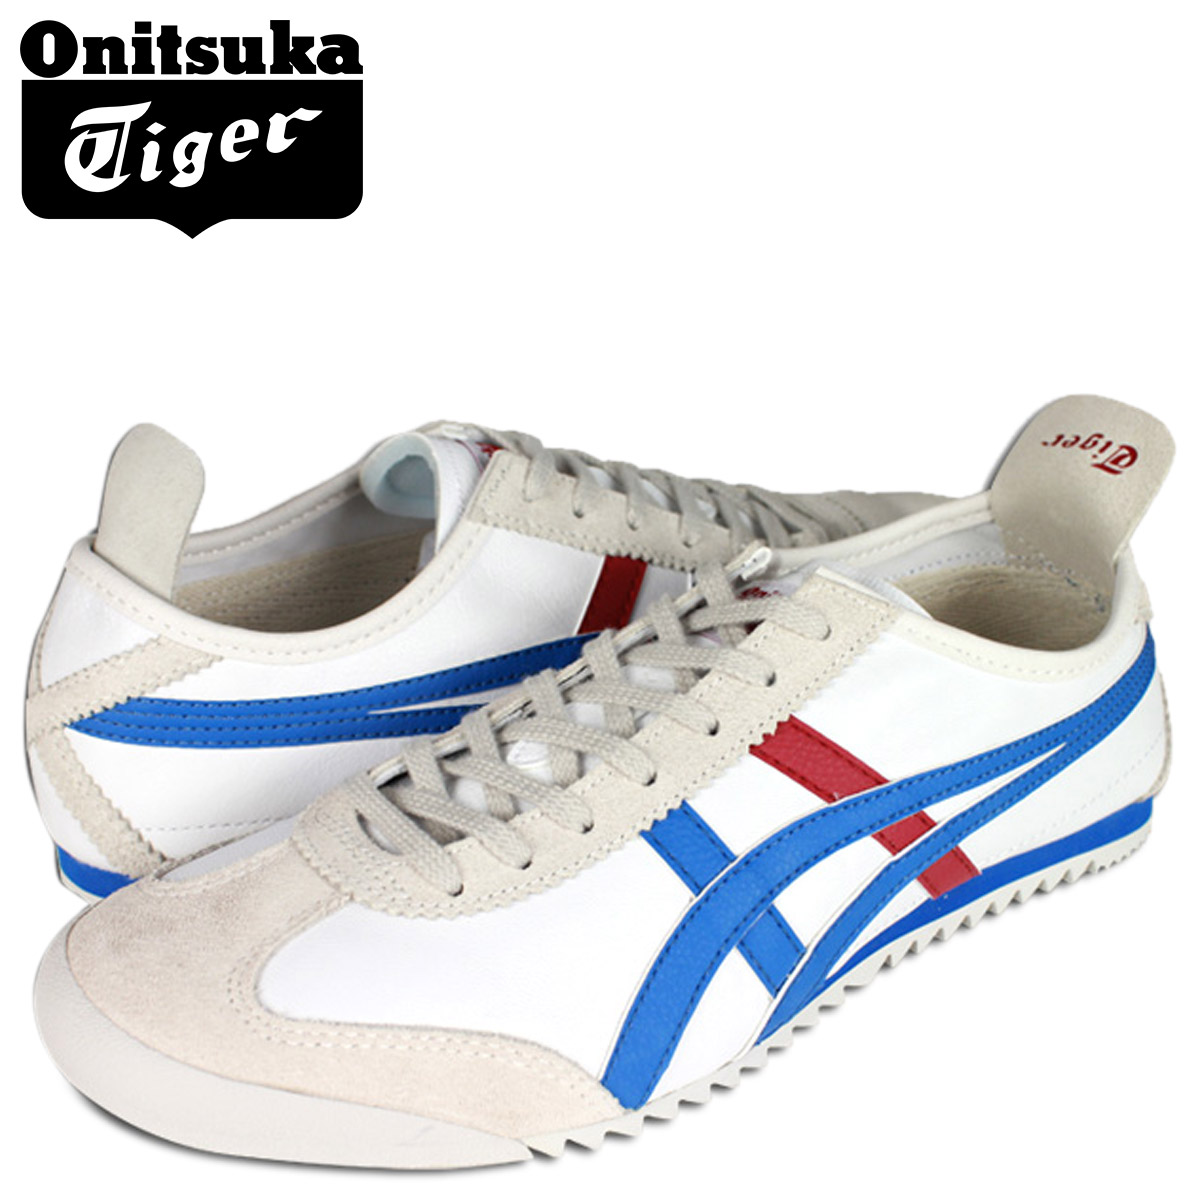 new style a3714 6a659 [SOLD OUT] ONITSUKA Tiger ASICs Onitsuka Tiger asics sneakers white-Royal  Blue D 012L-0143 MEXIC 66 DX LE mens